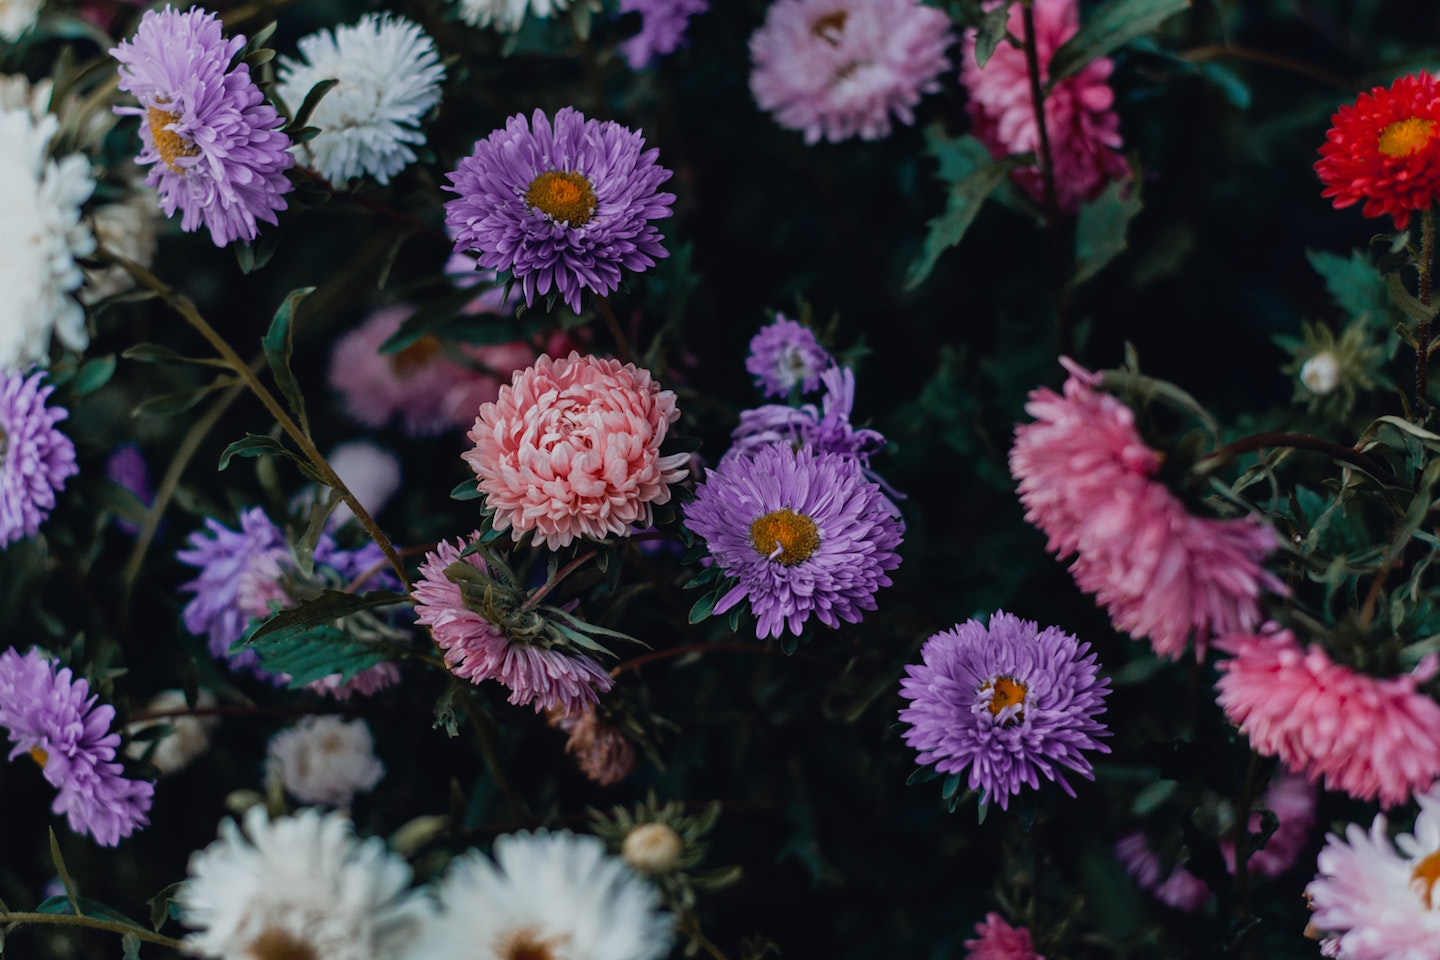 Image: mass of purple, pink and white daisy, cheerful and wild.